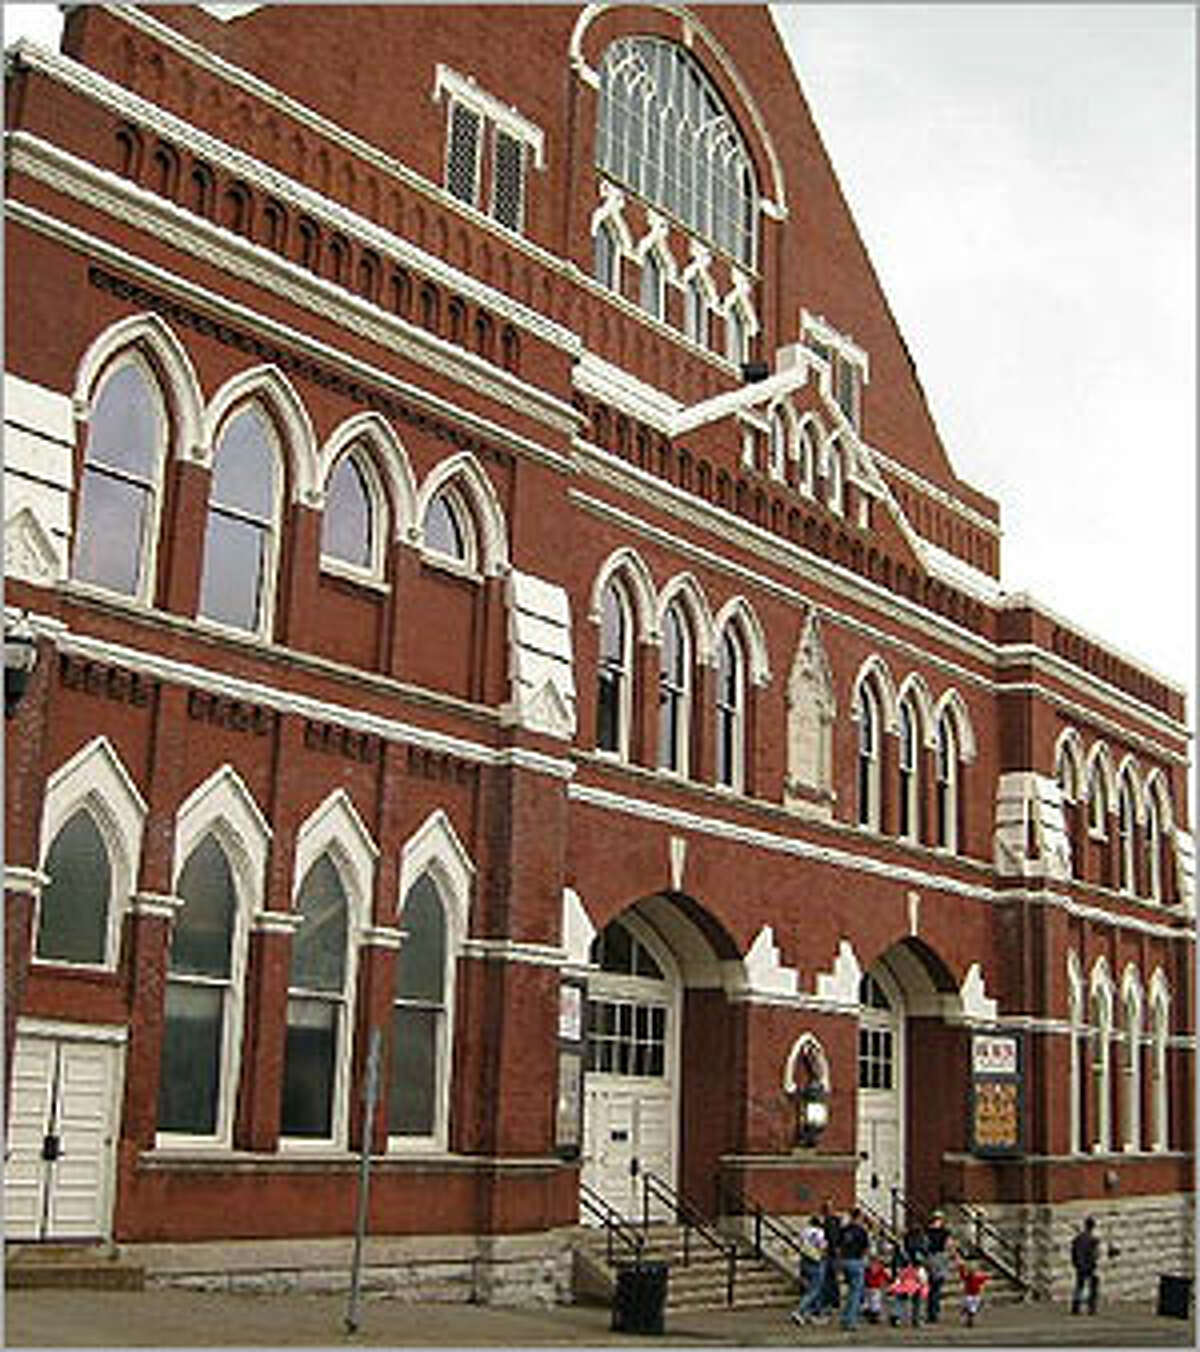 Ryman Auditorium, the original home of the Grand Ole Opry, is open for tours and shows.